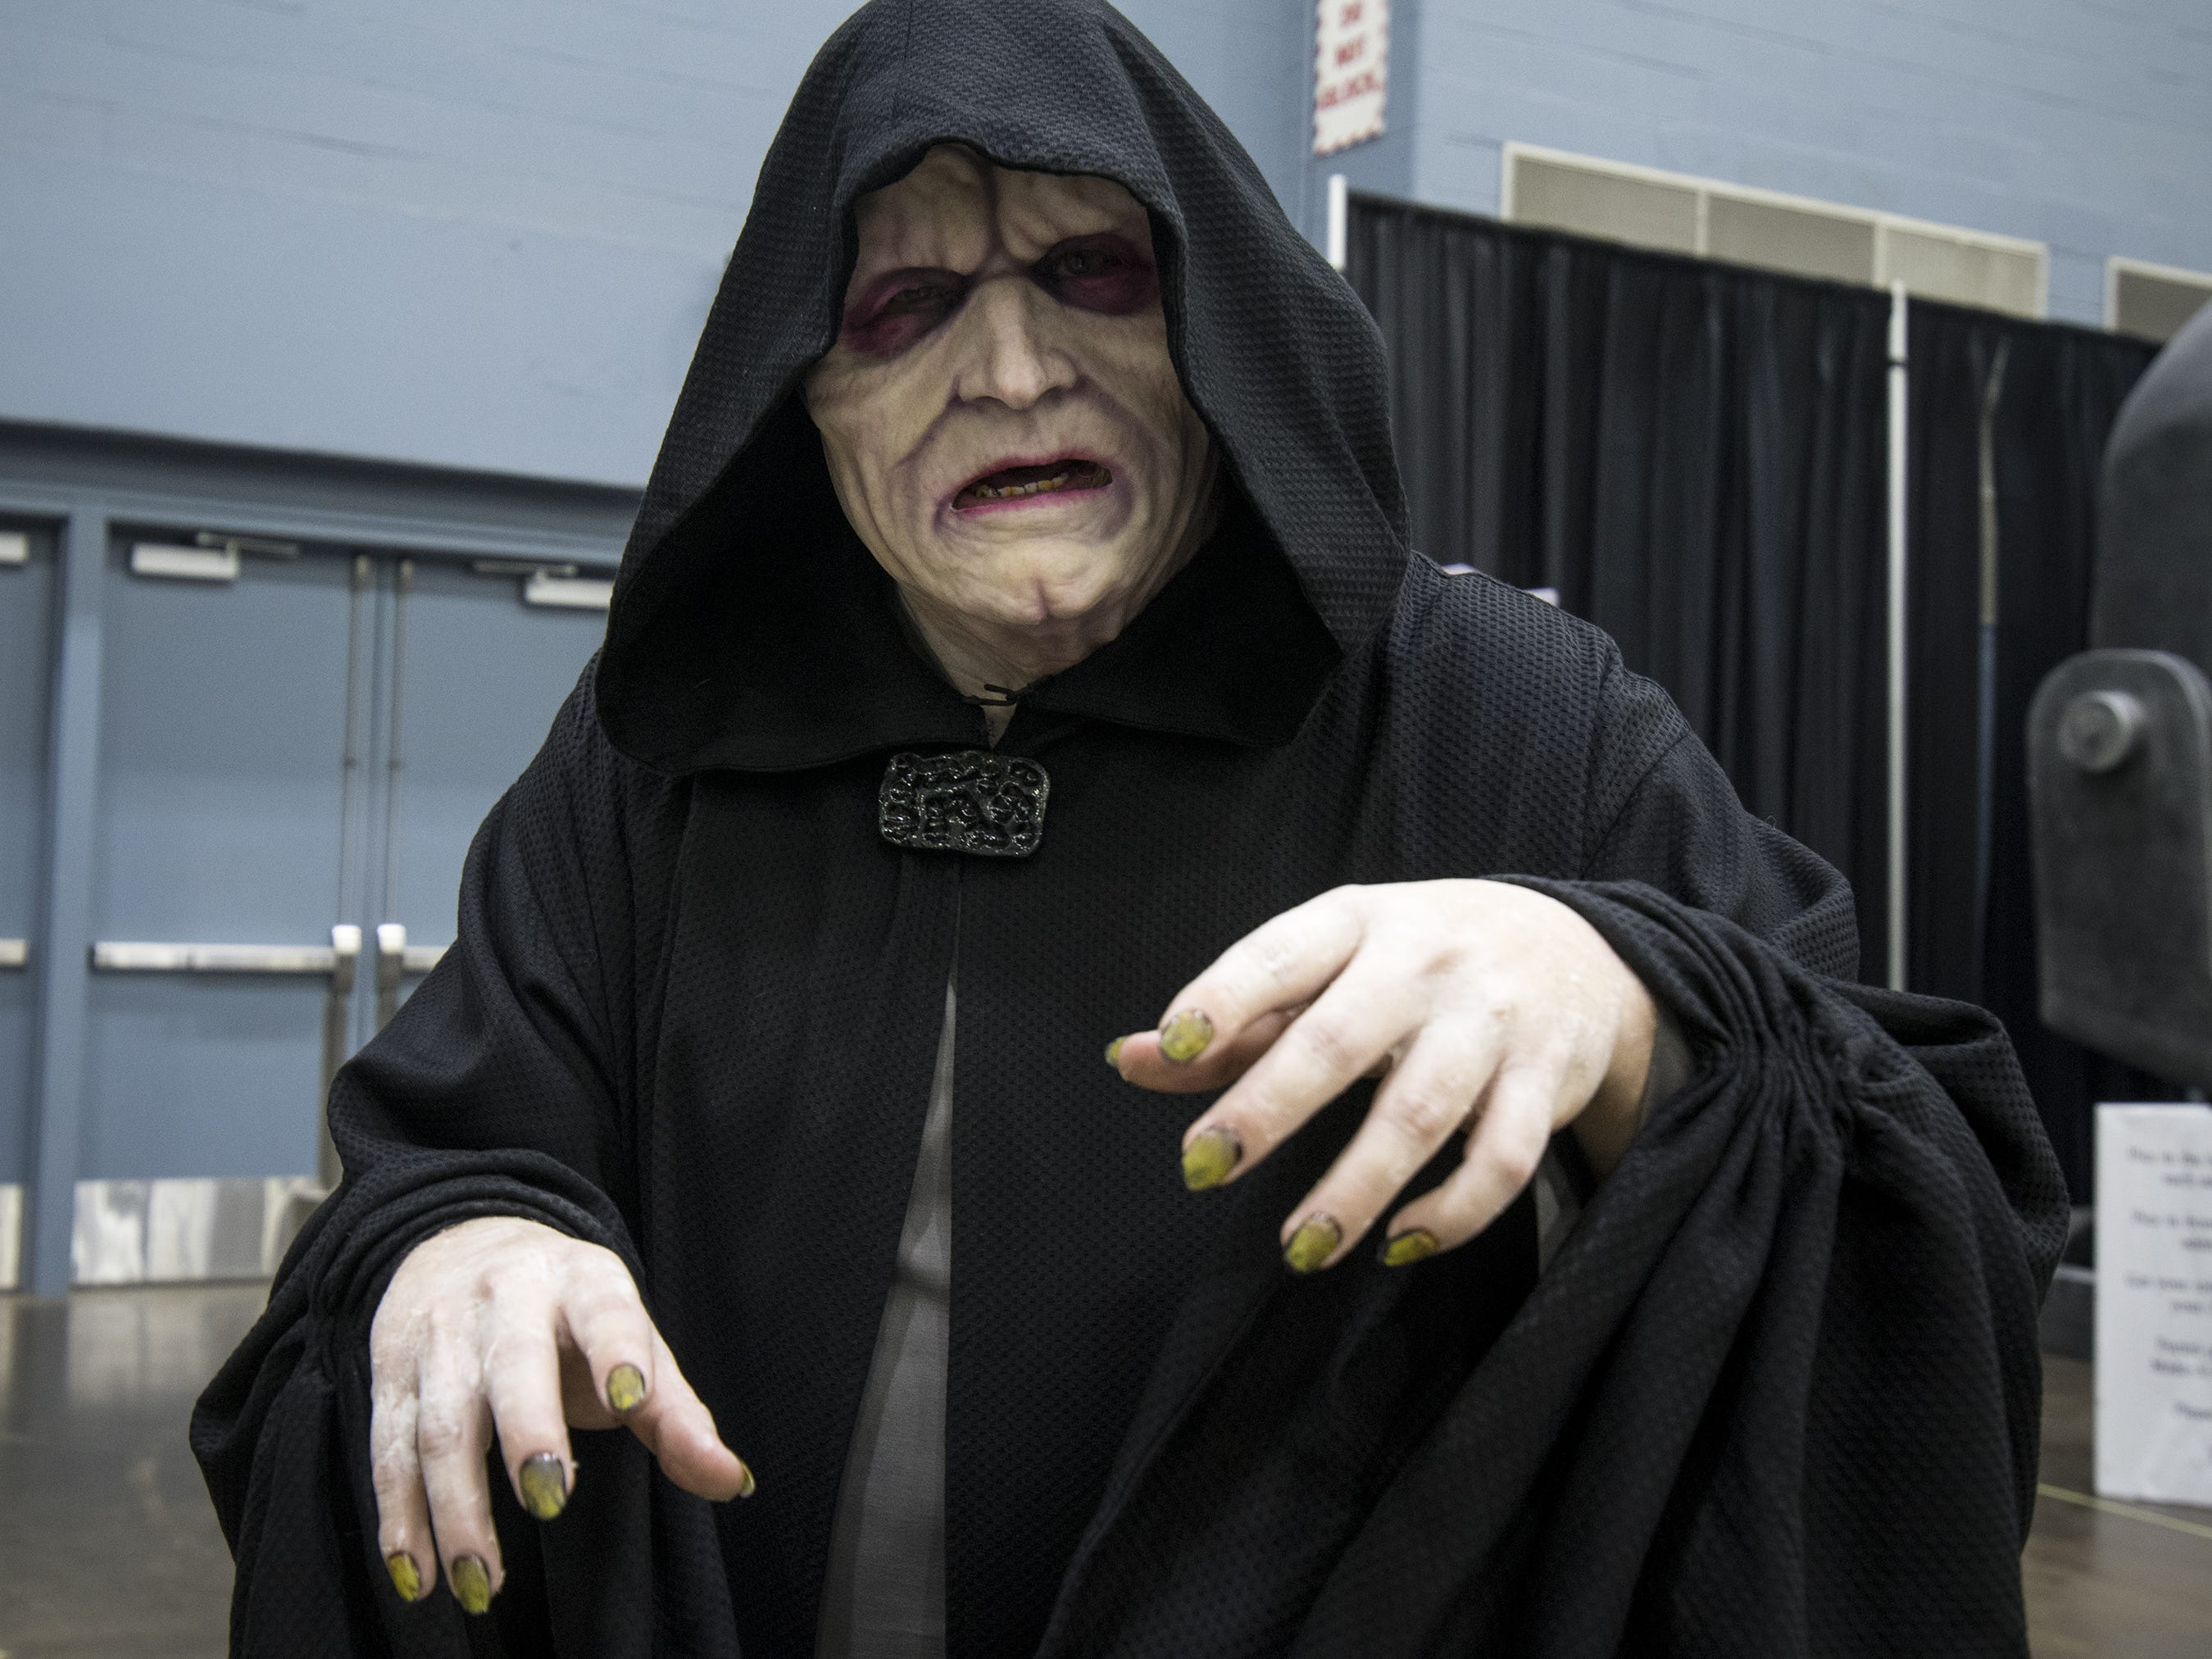 Paul Doyal of Owensboro cosplays the Emperor from Star Wars.